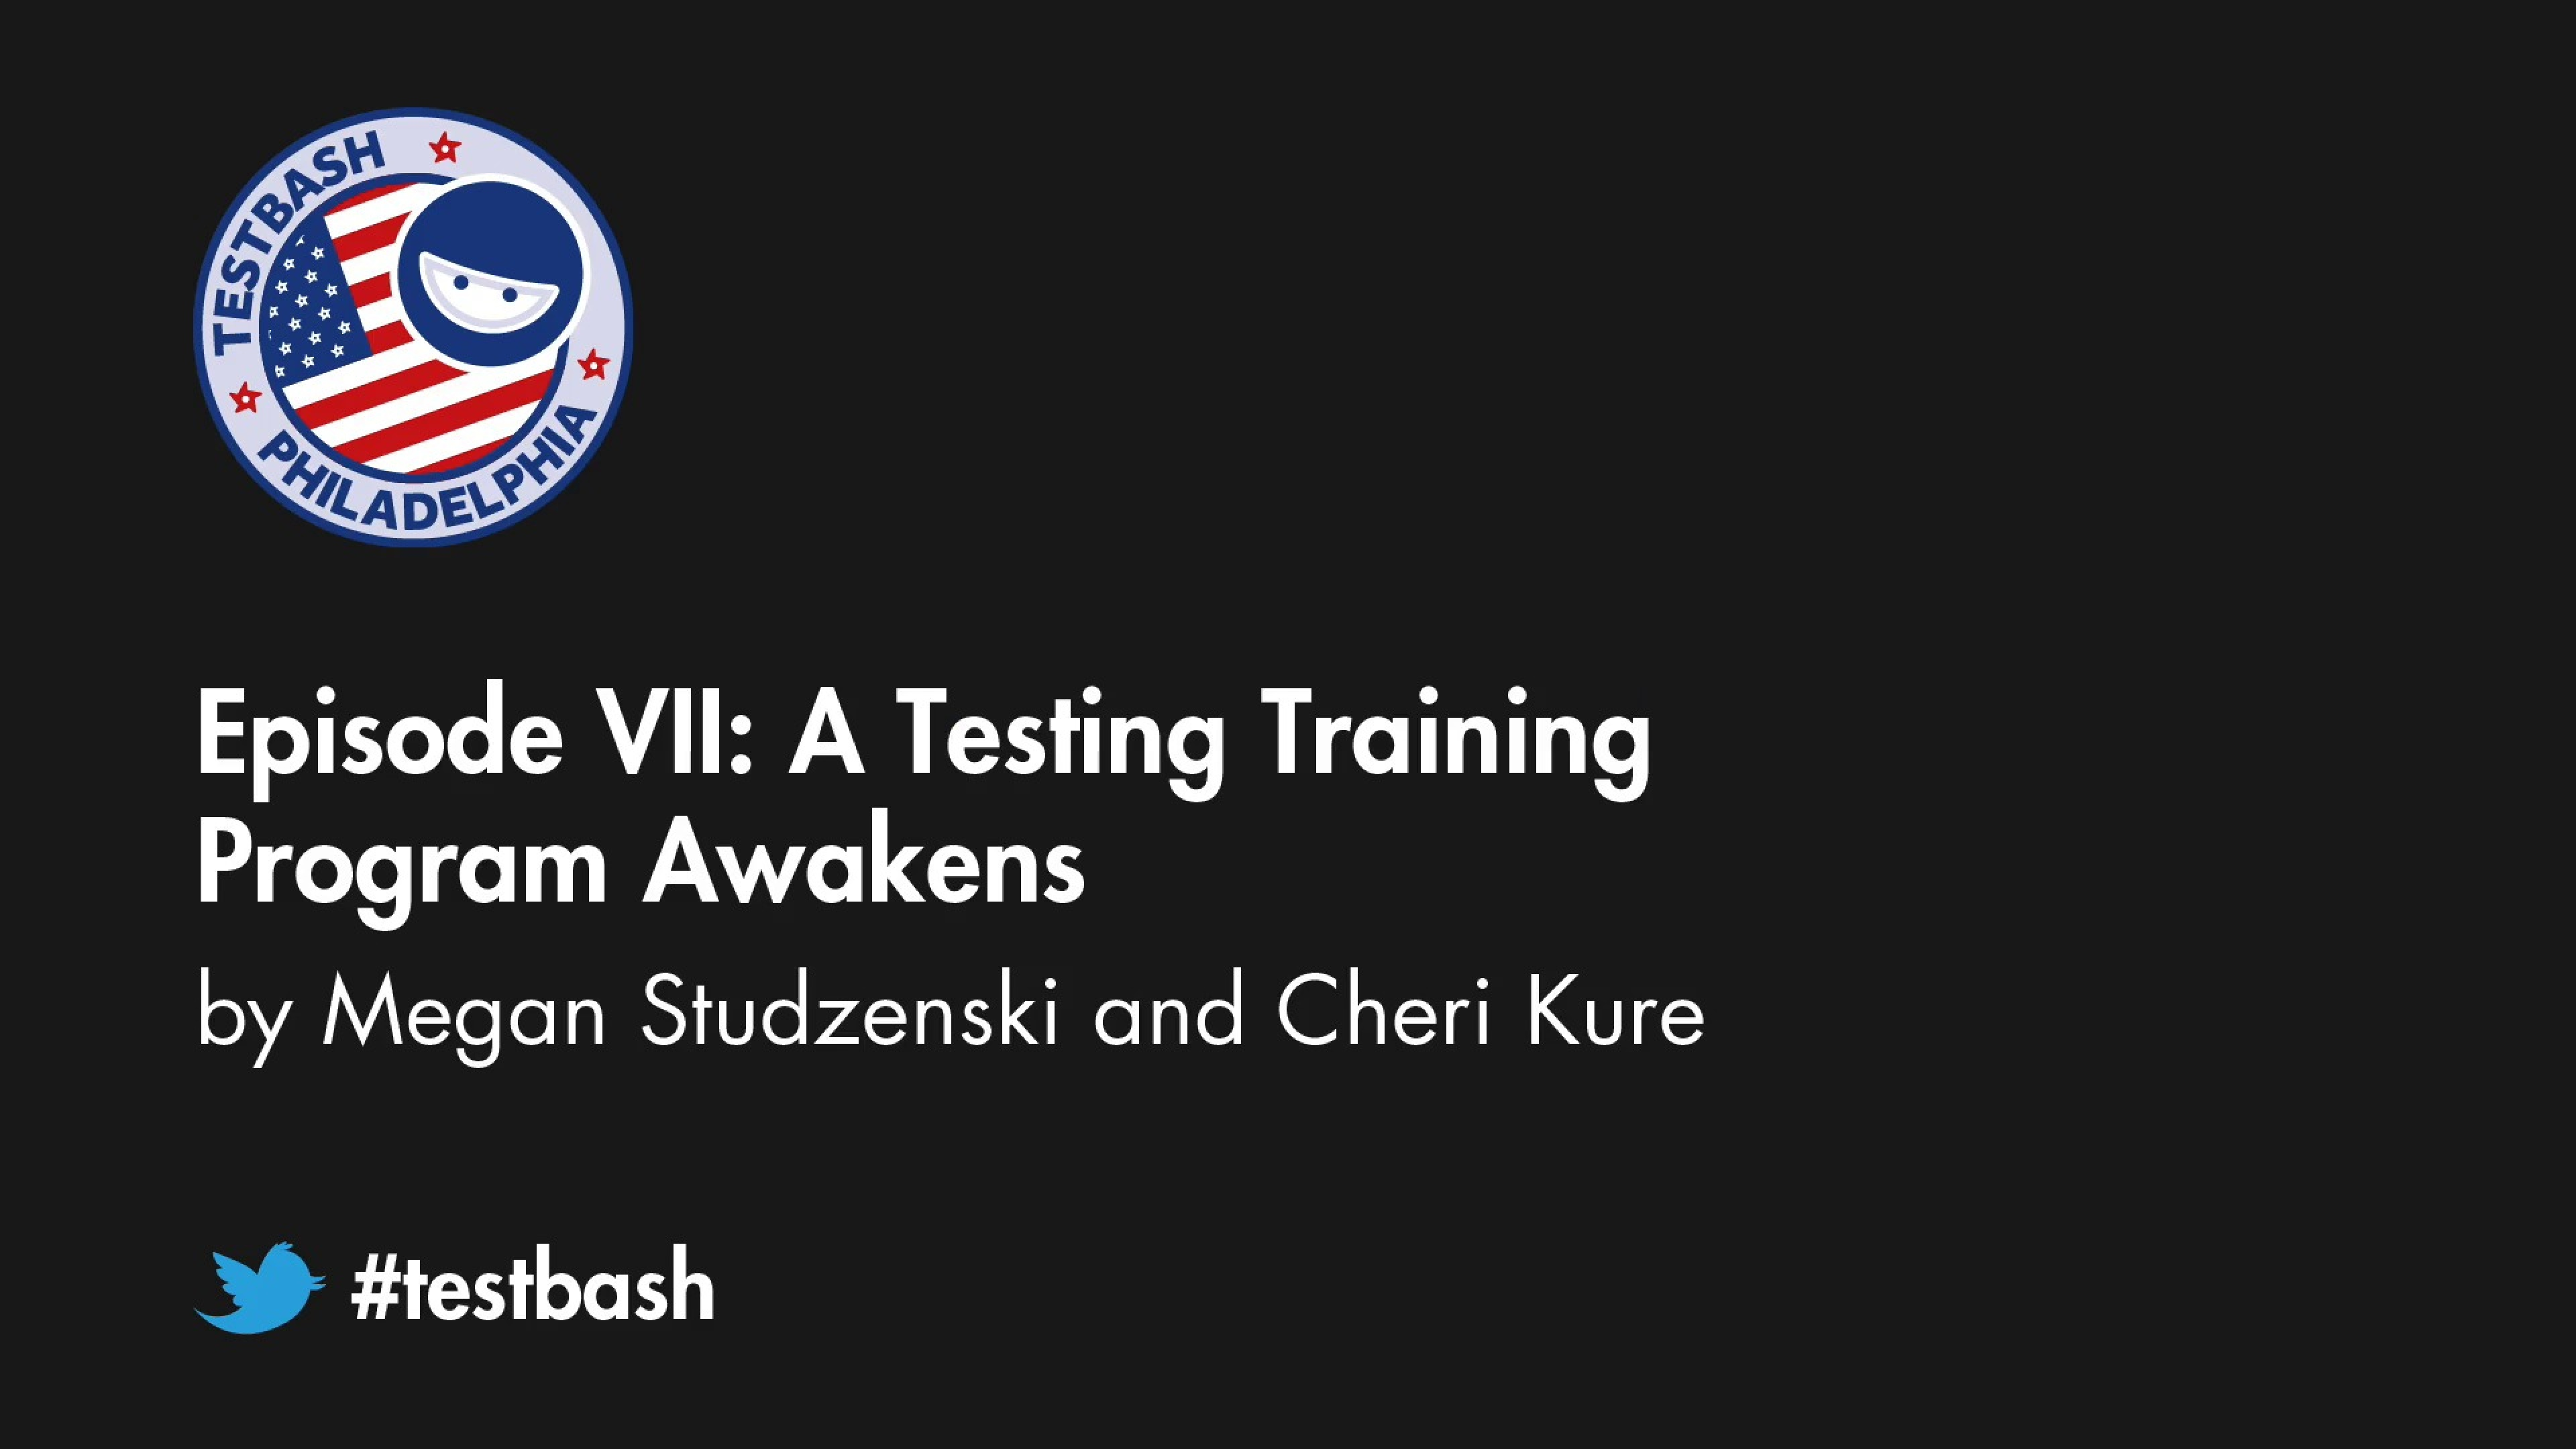 Episode VII: A Tester Training Program Awakens – Megan Studzenski & Cheri Kure